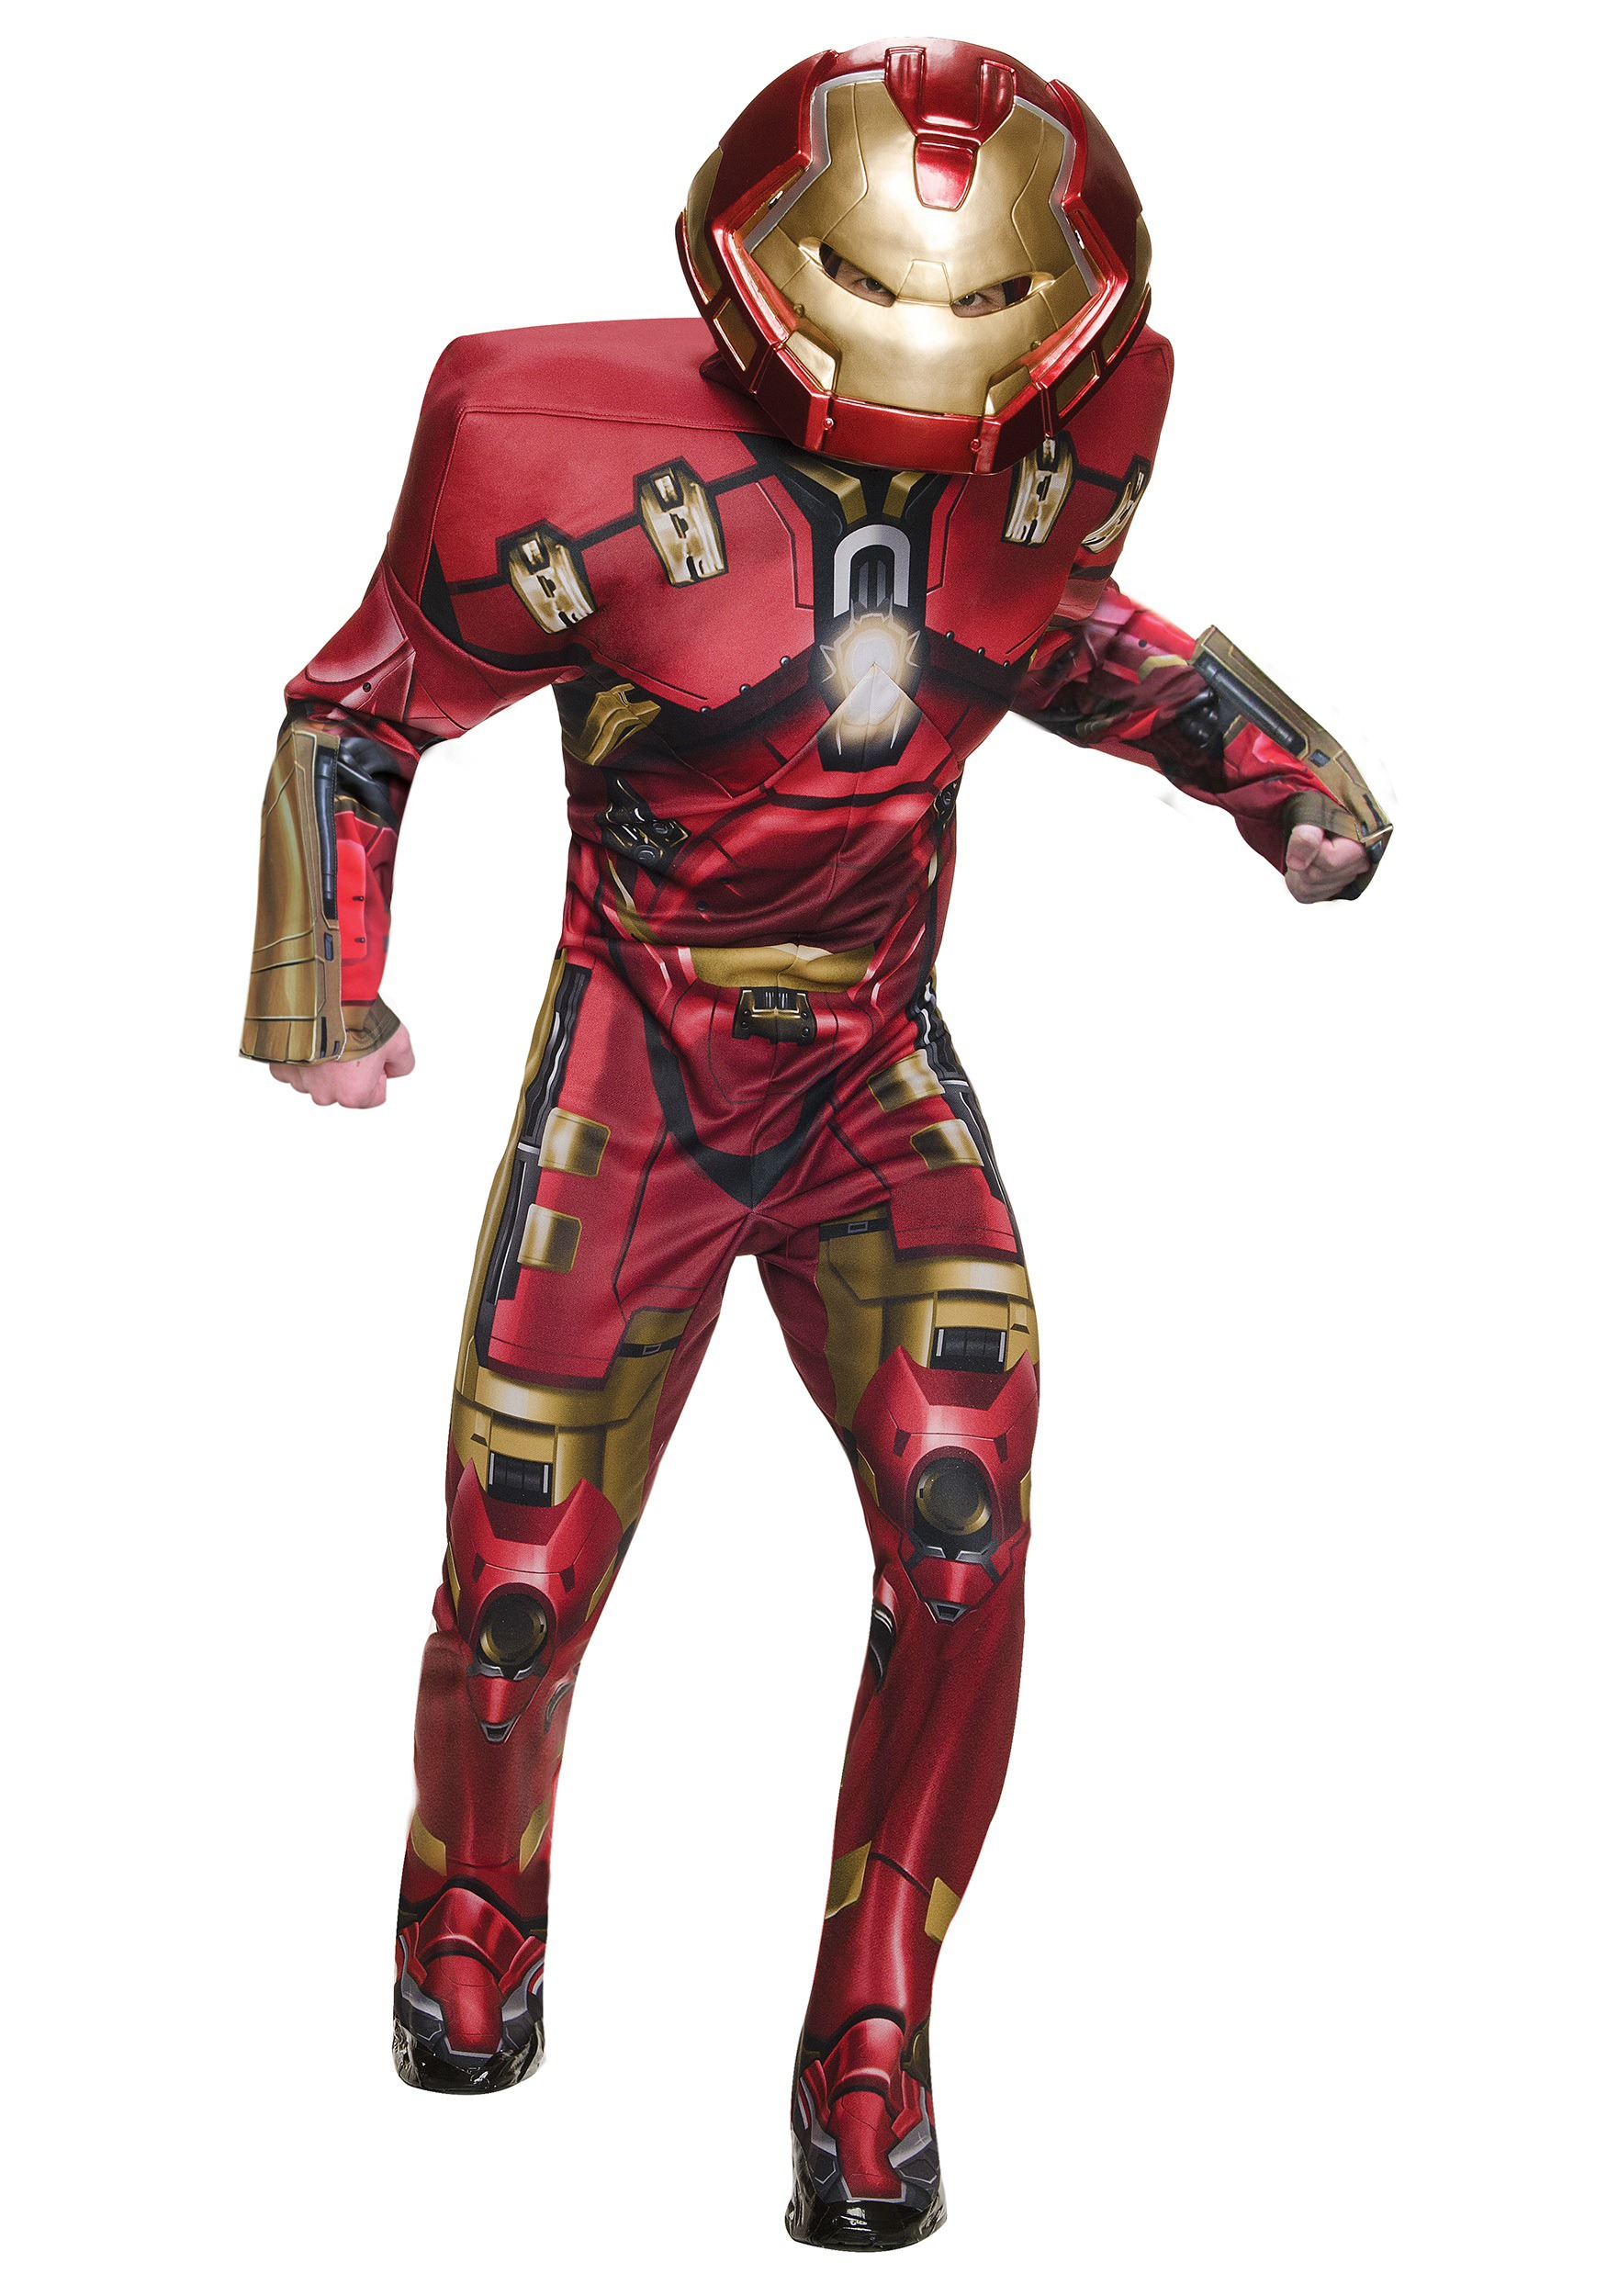 Adult Deluxe Hulk Buster Iron Man Avengers 2 Costume